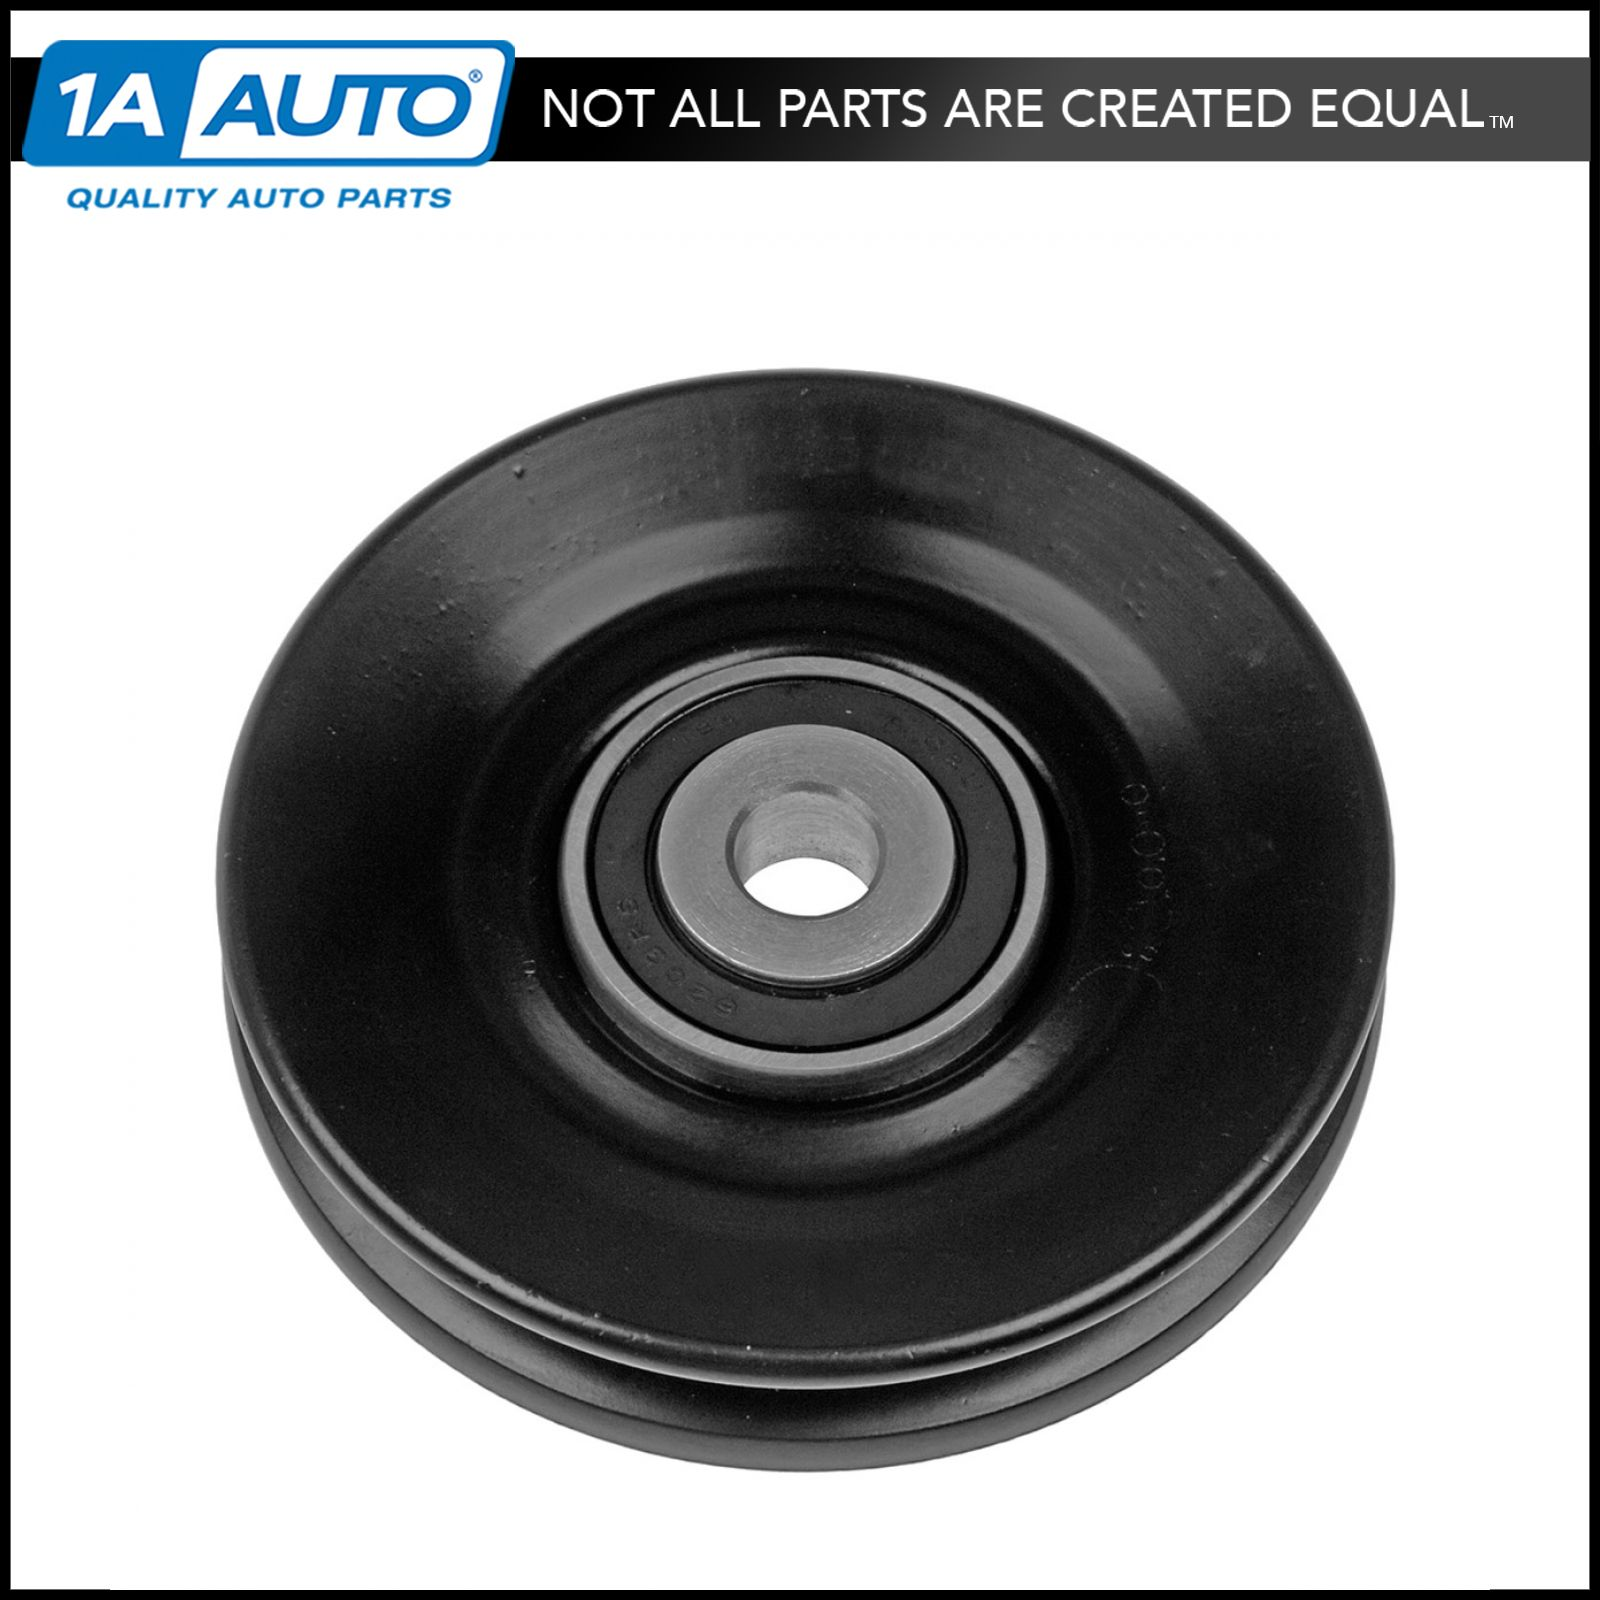 Dorman 419-610 Accessory Belt Idler Pulley For 2005-2009 Ford F-150